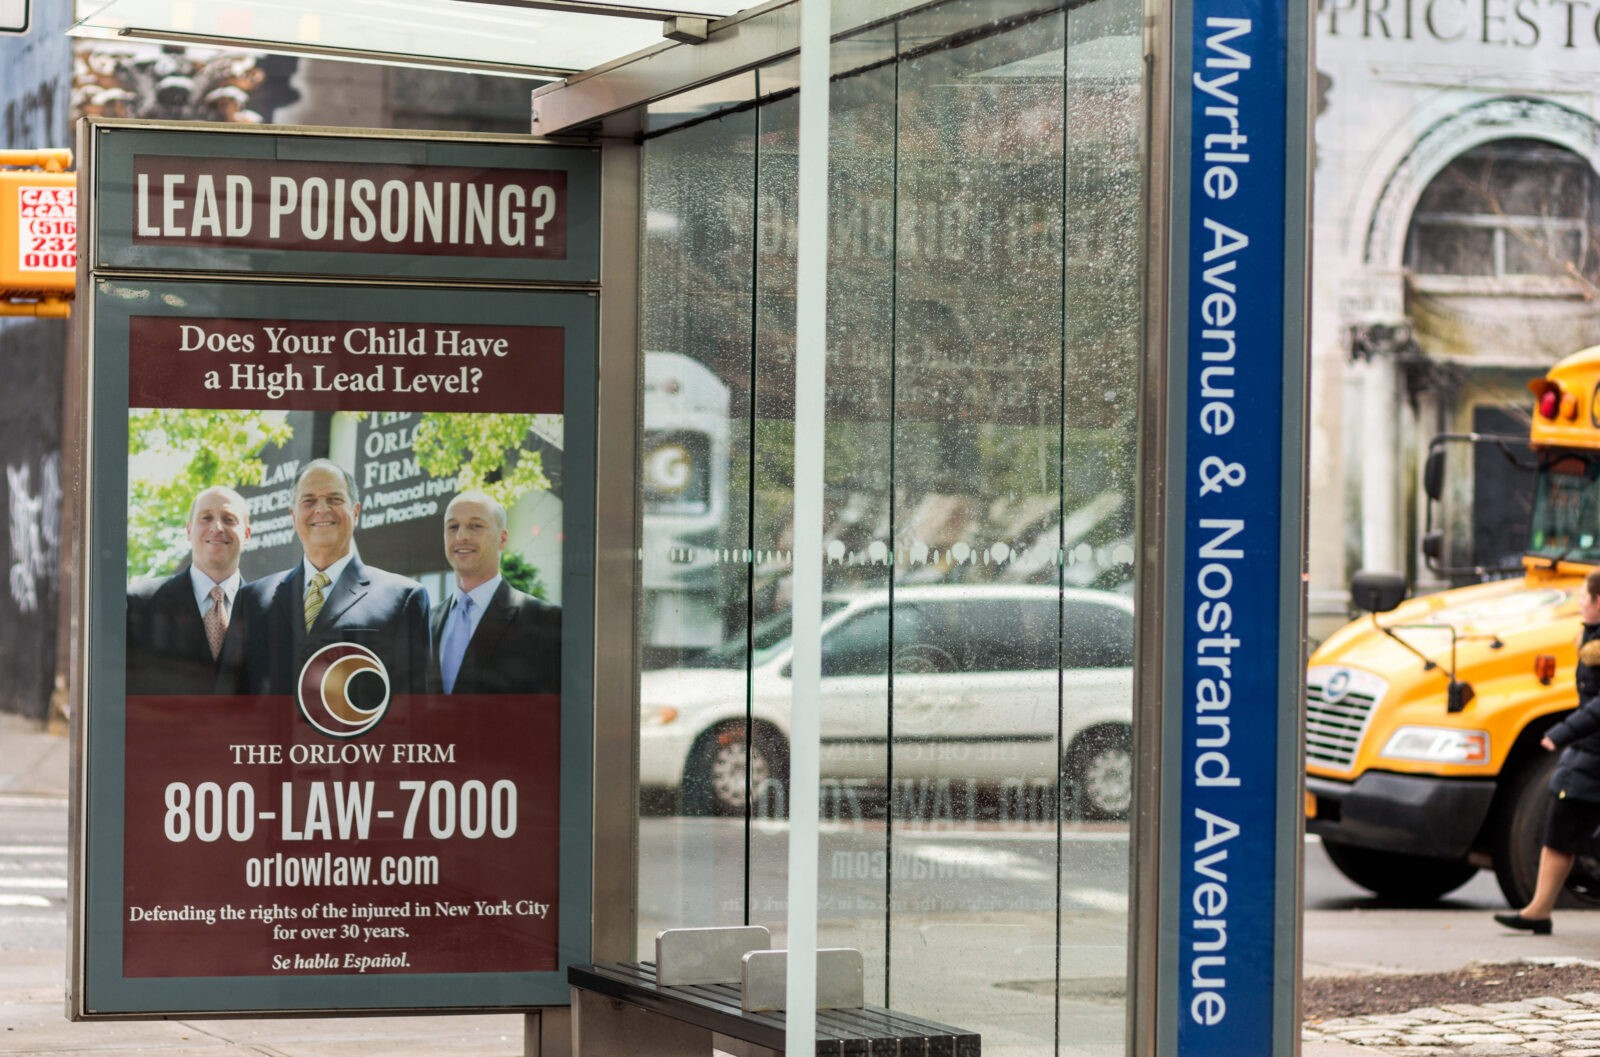 The Orlow Firm Bus Shelter Advertising Campaign